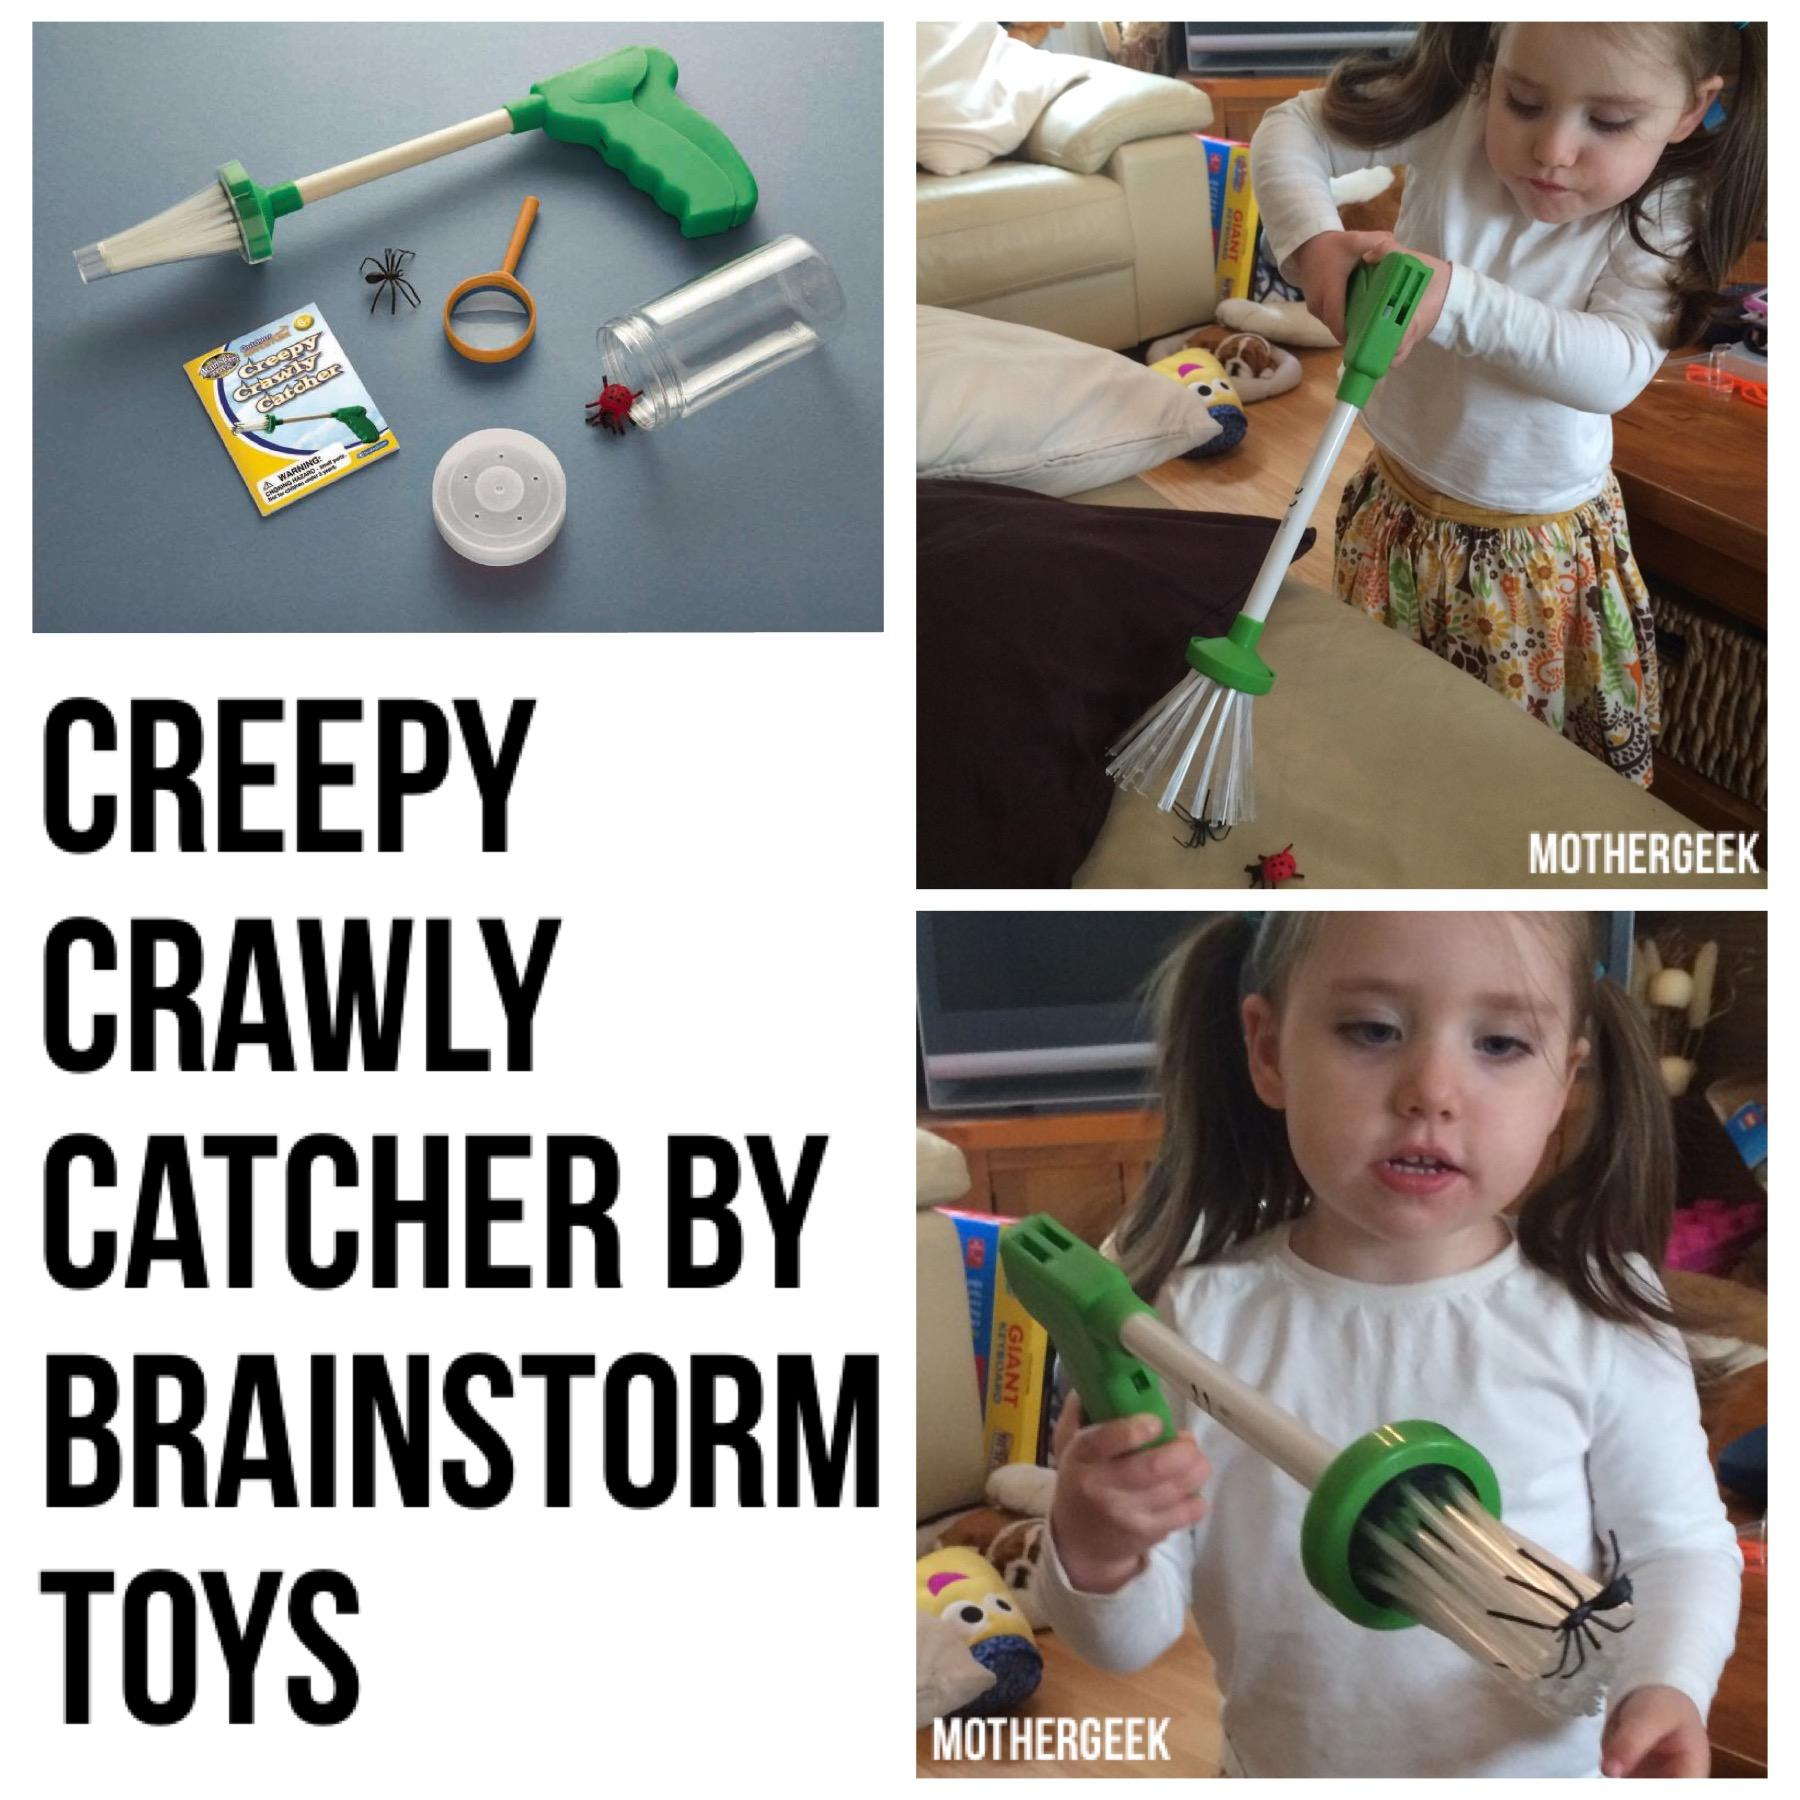 Creepy Crawly Catcher review - In action